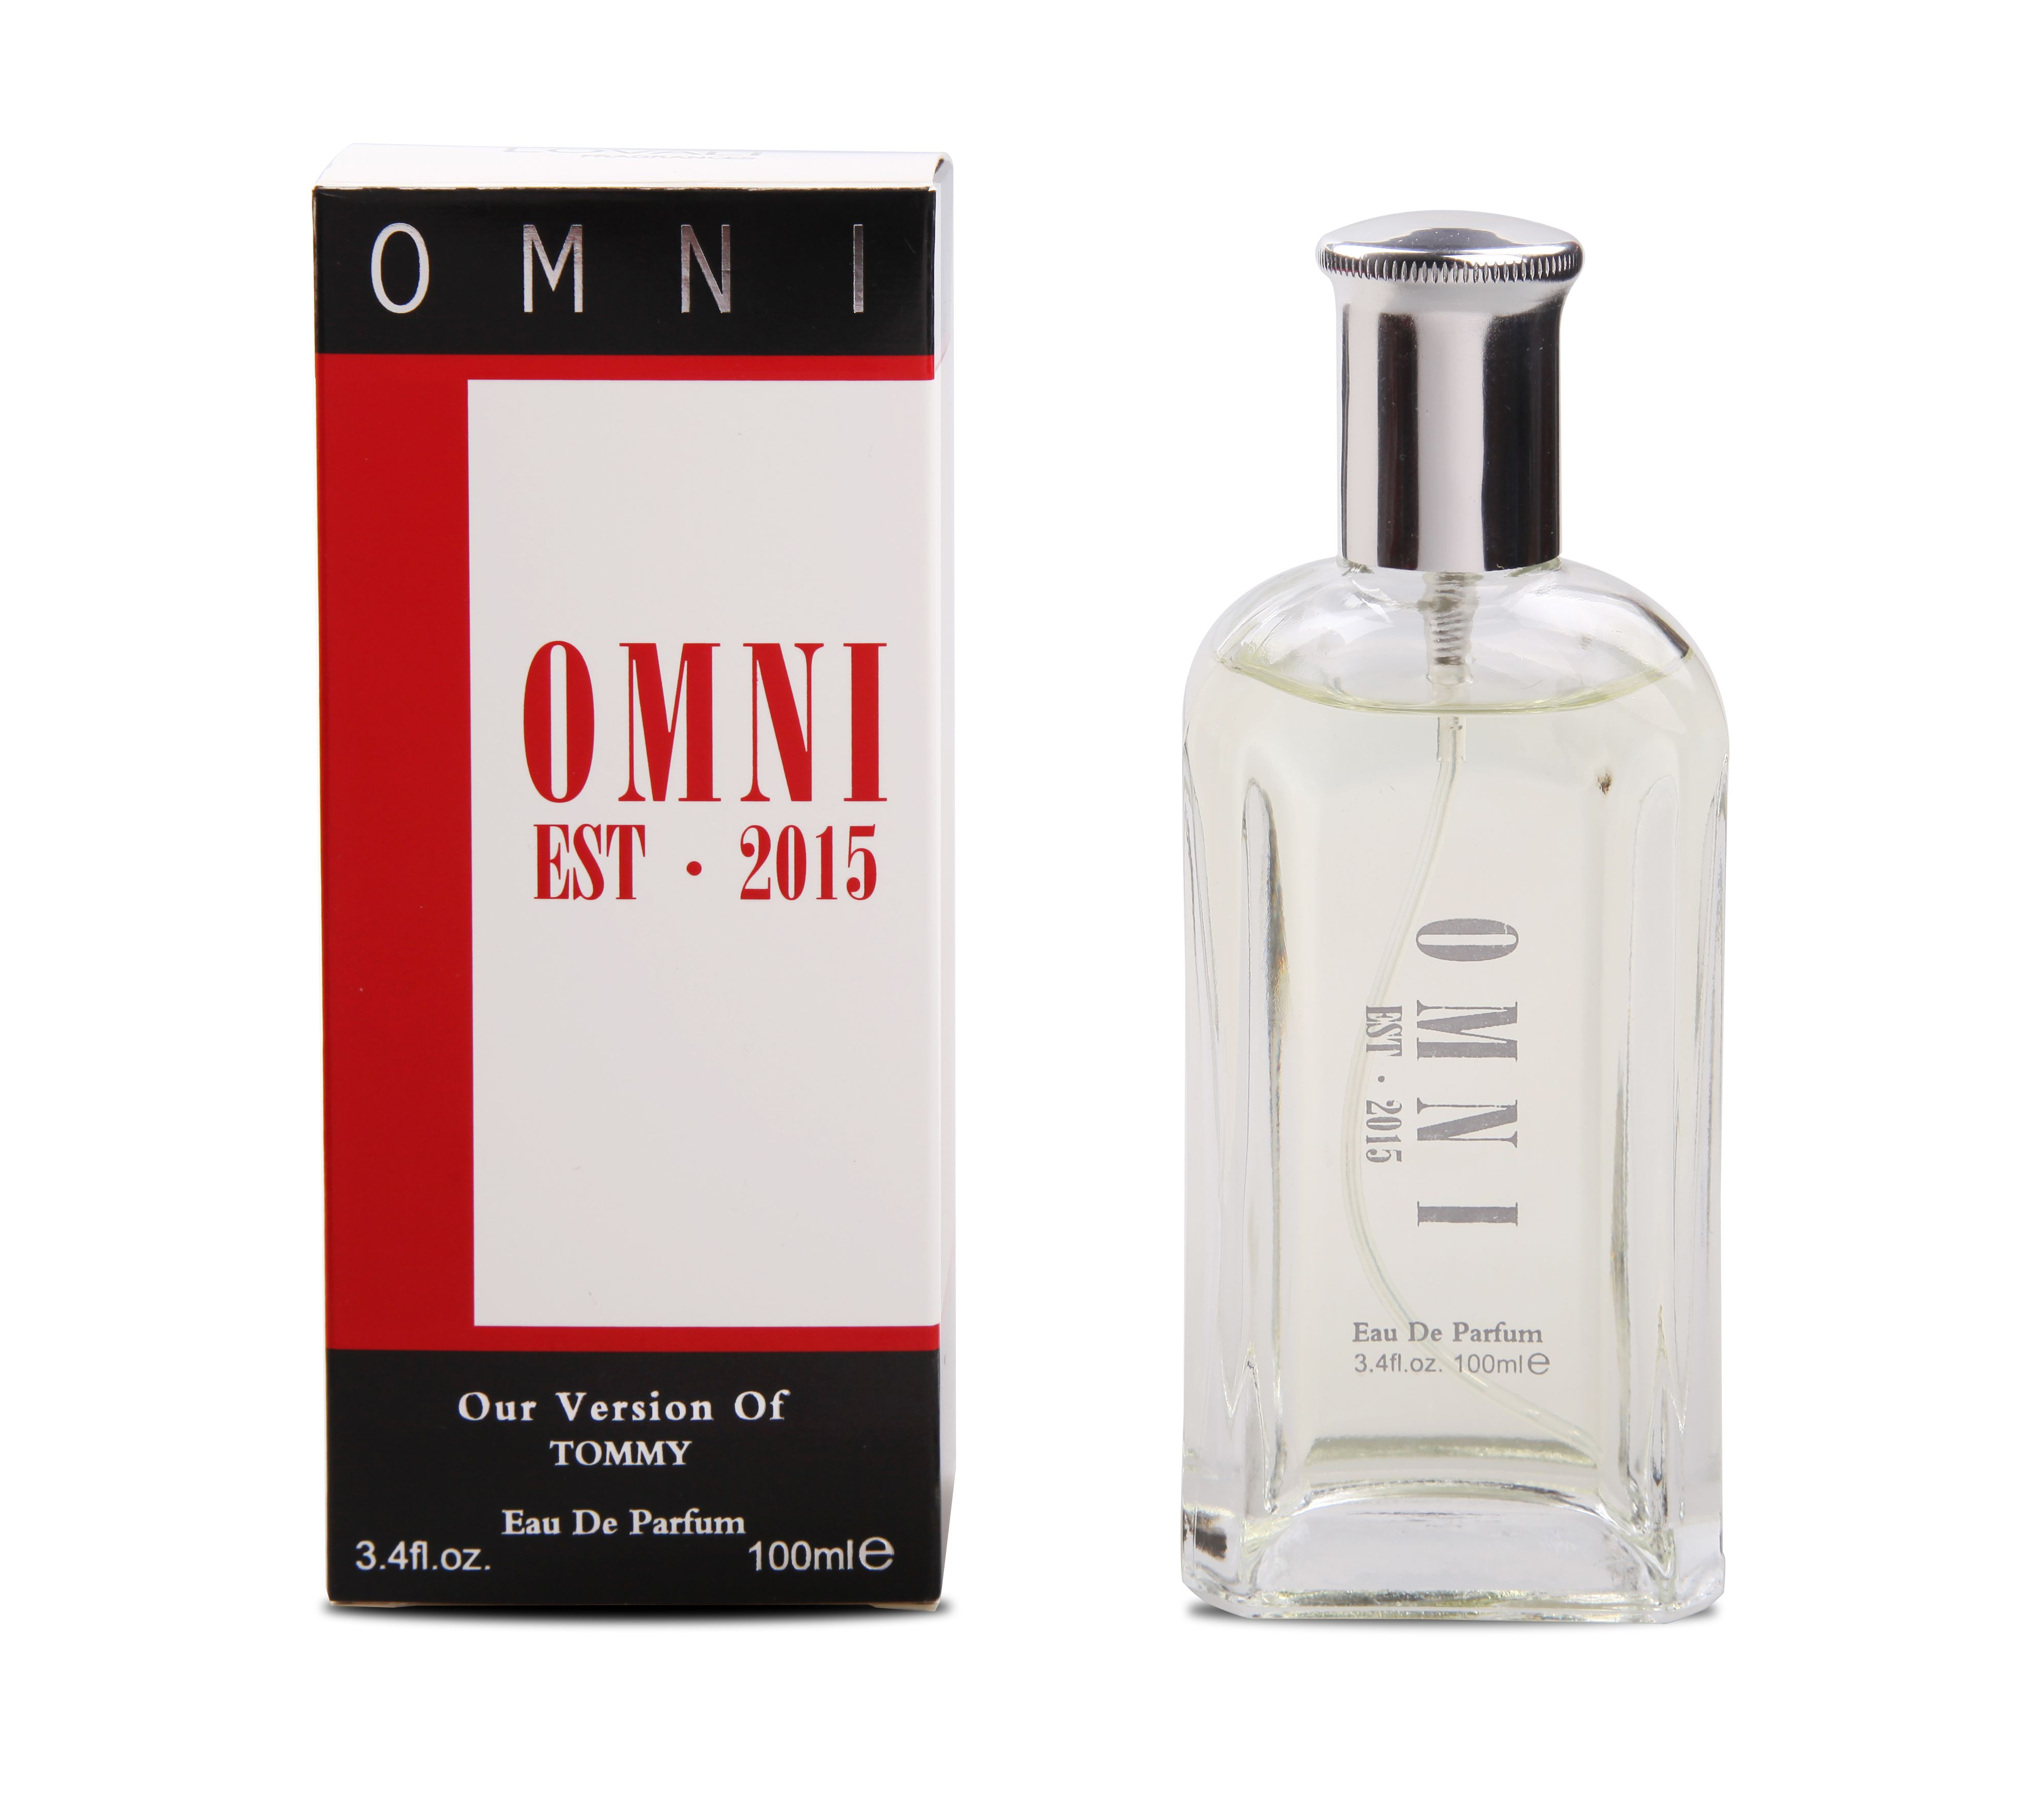 Uever OMNI 2015 Impersion for Tommy Hilghfiger 100ml edt we have stock,if you want to buy please contact with Jojo whatsapp:+8615825794695